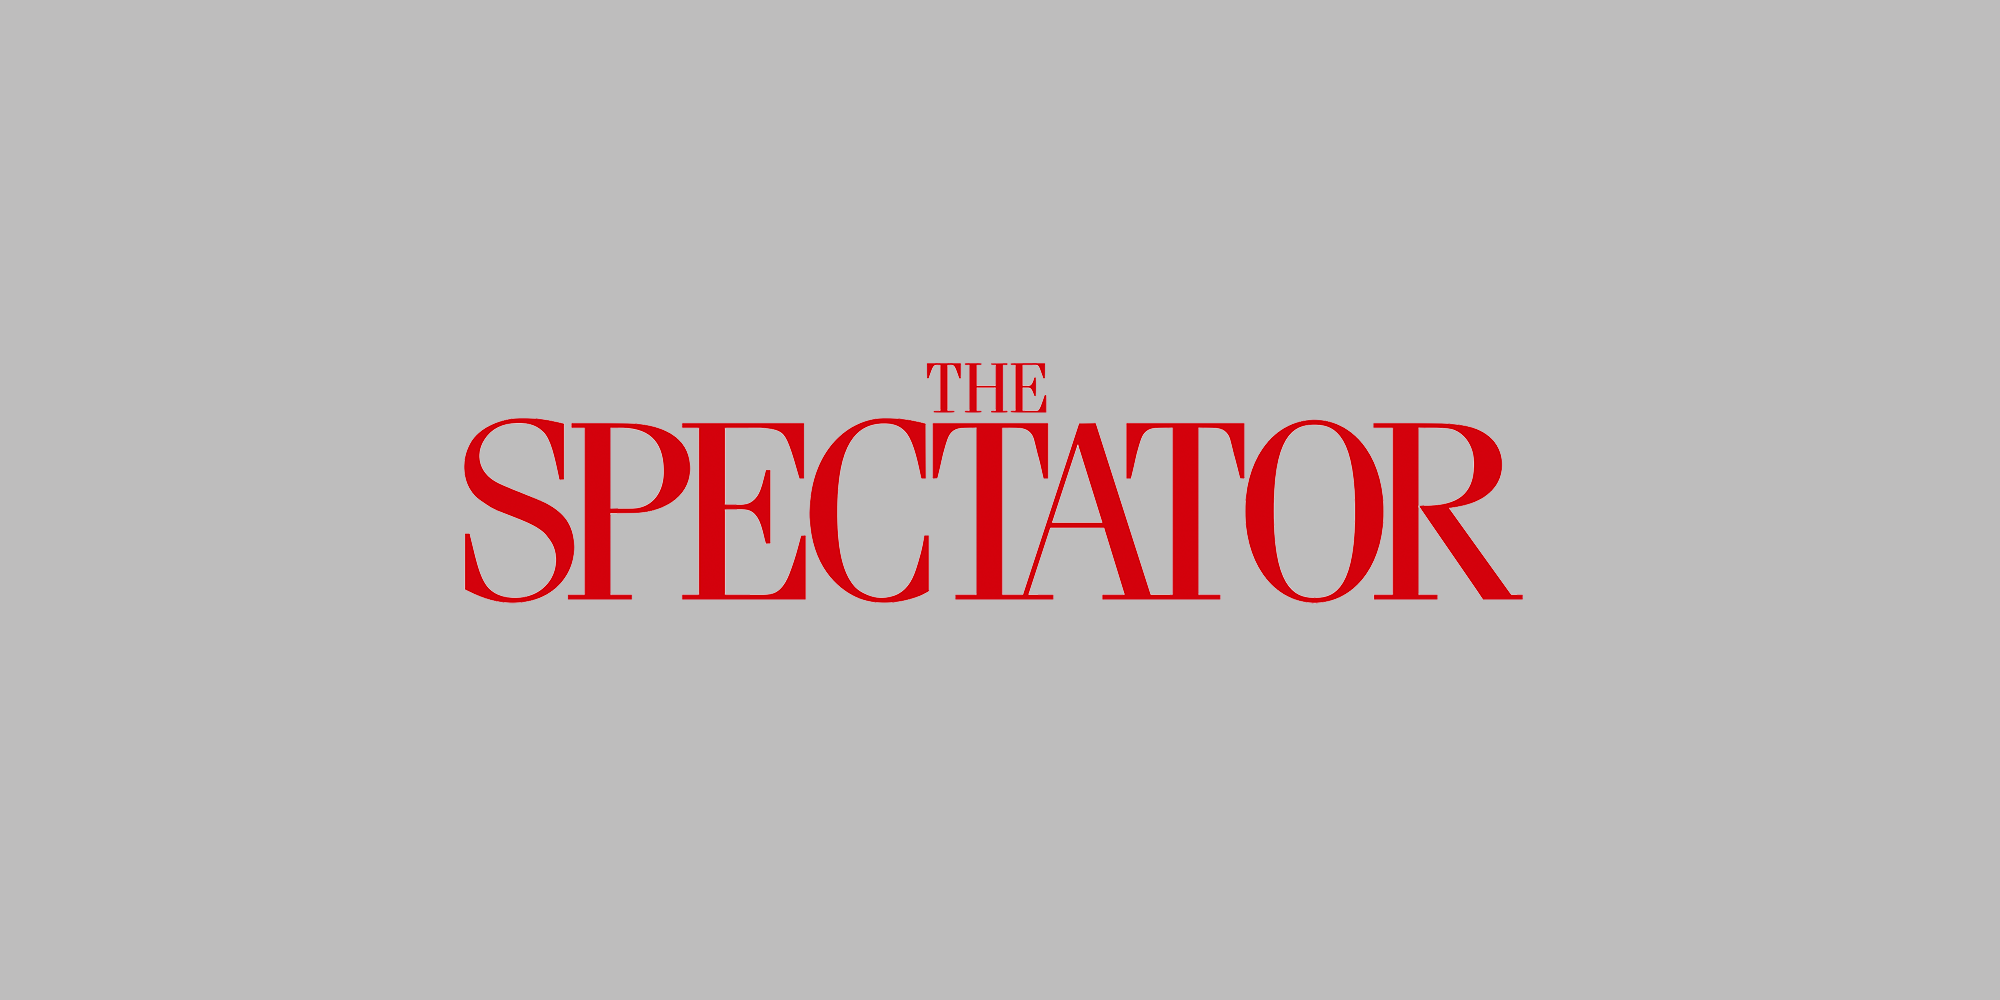 The-Spectator-blogpost